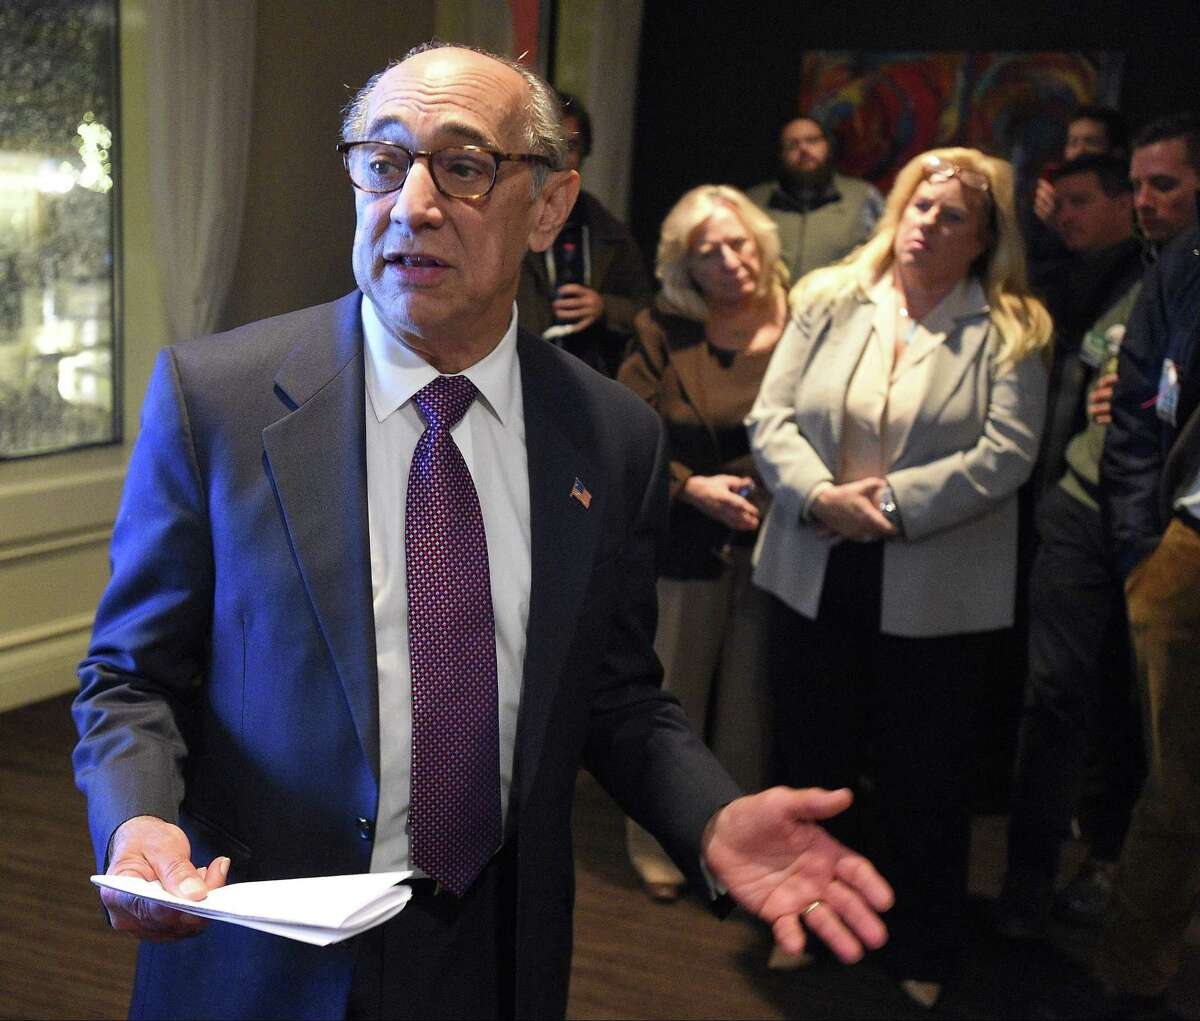 FILE - Republican mayoral candidate Barry Michelson addresses supporters gathered at Quattro Pazzi in Stamford, Connecticut on Tuesday, Nov. 7, 2017. Michelson conceded to Democratic challenger Mayor David Martin.